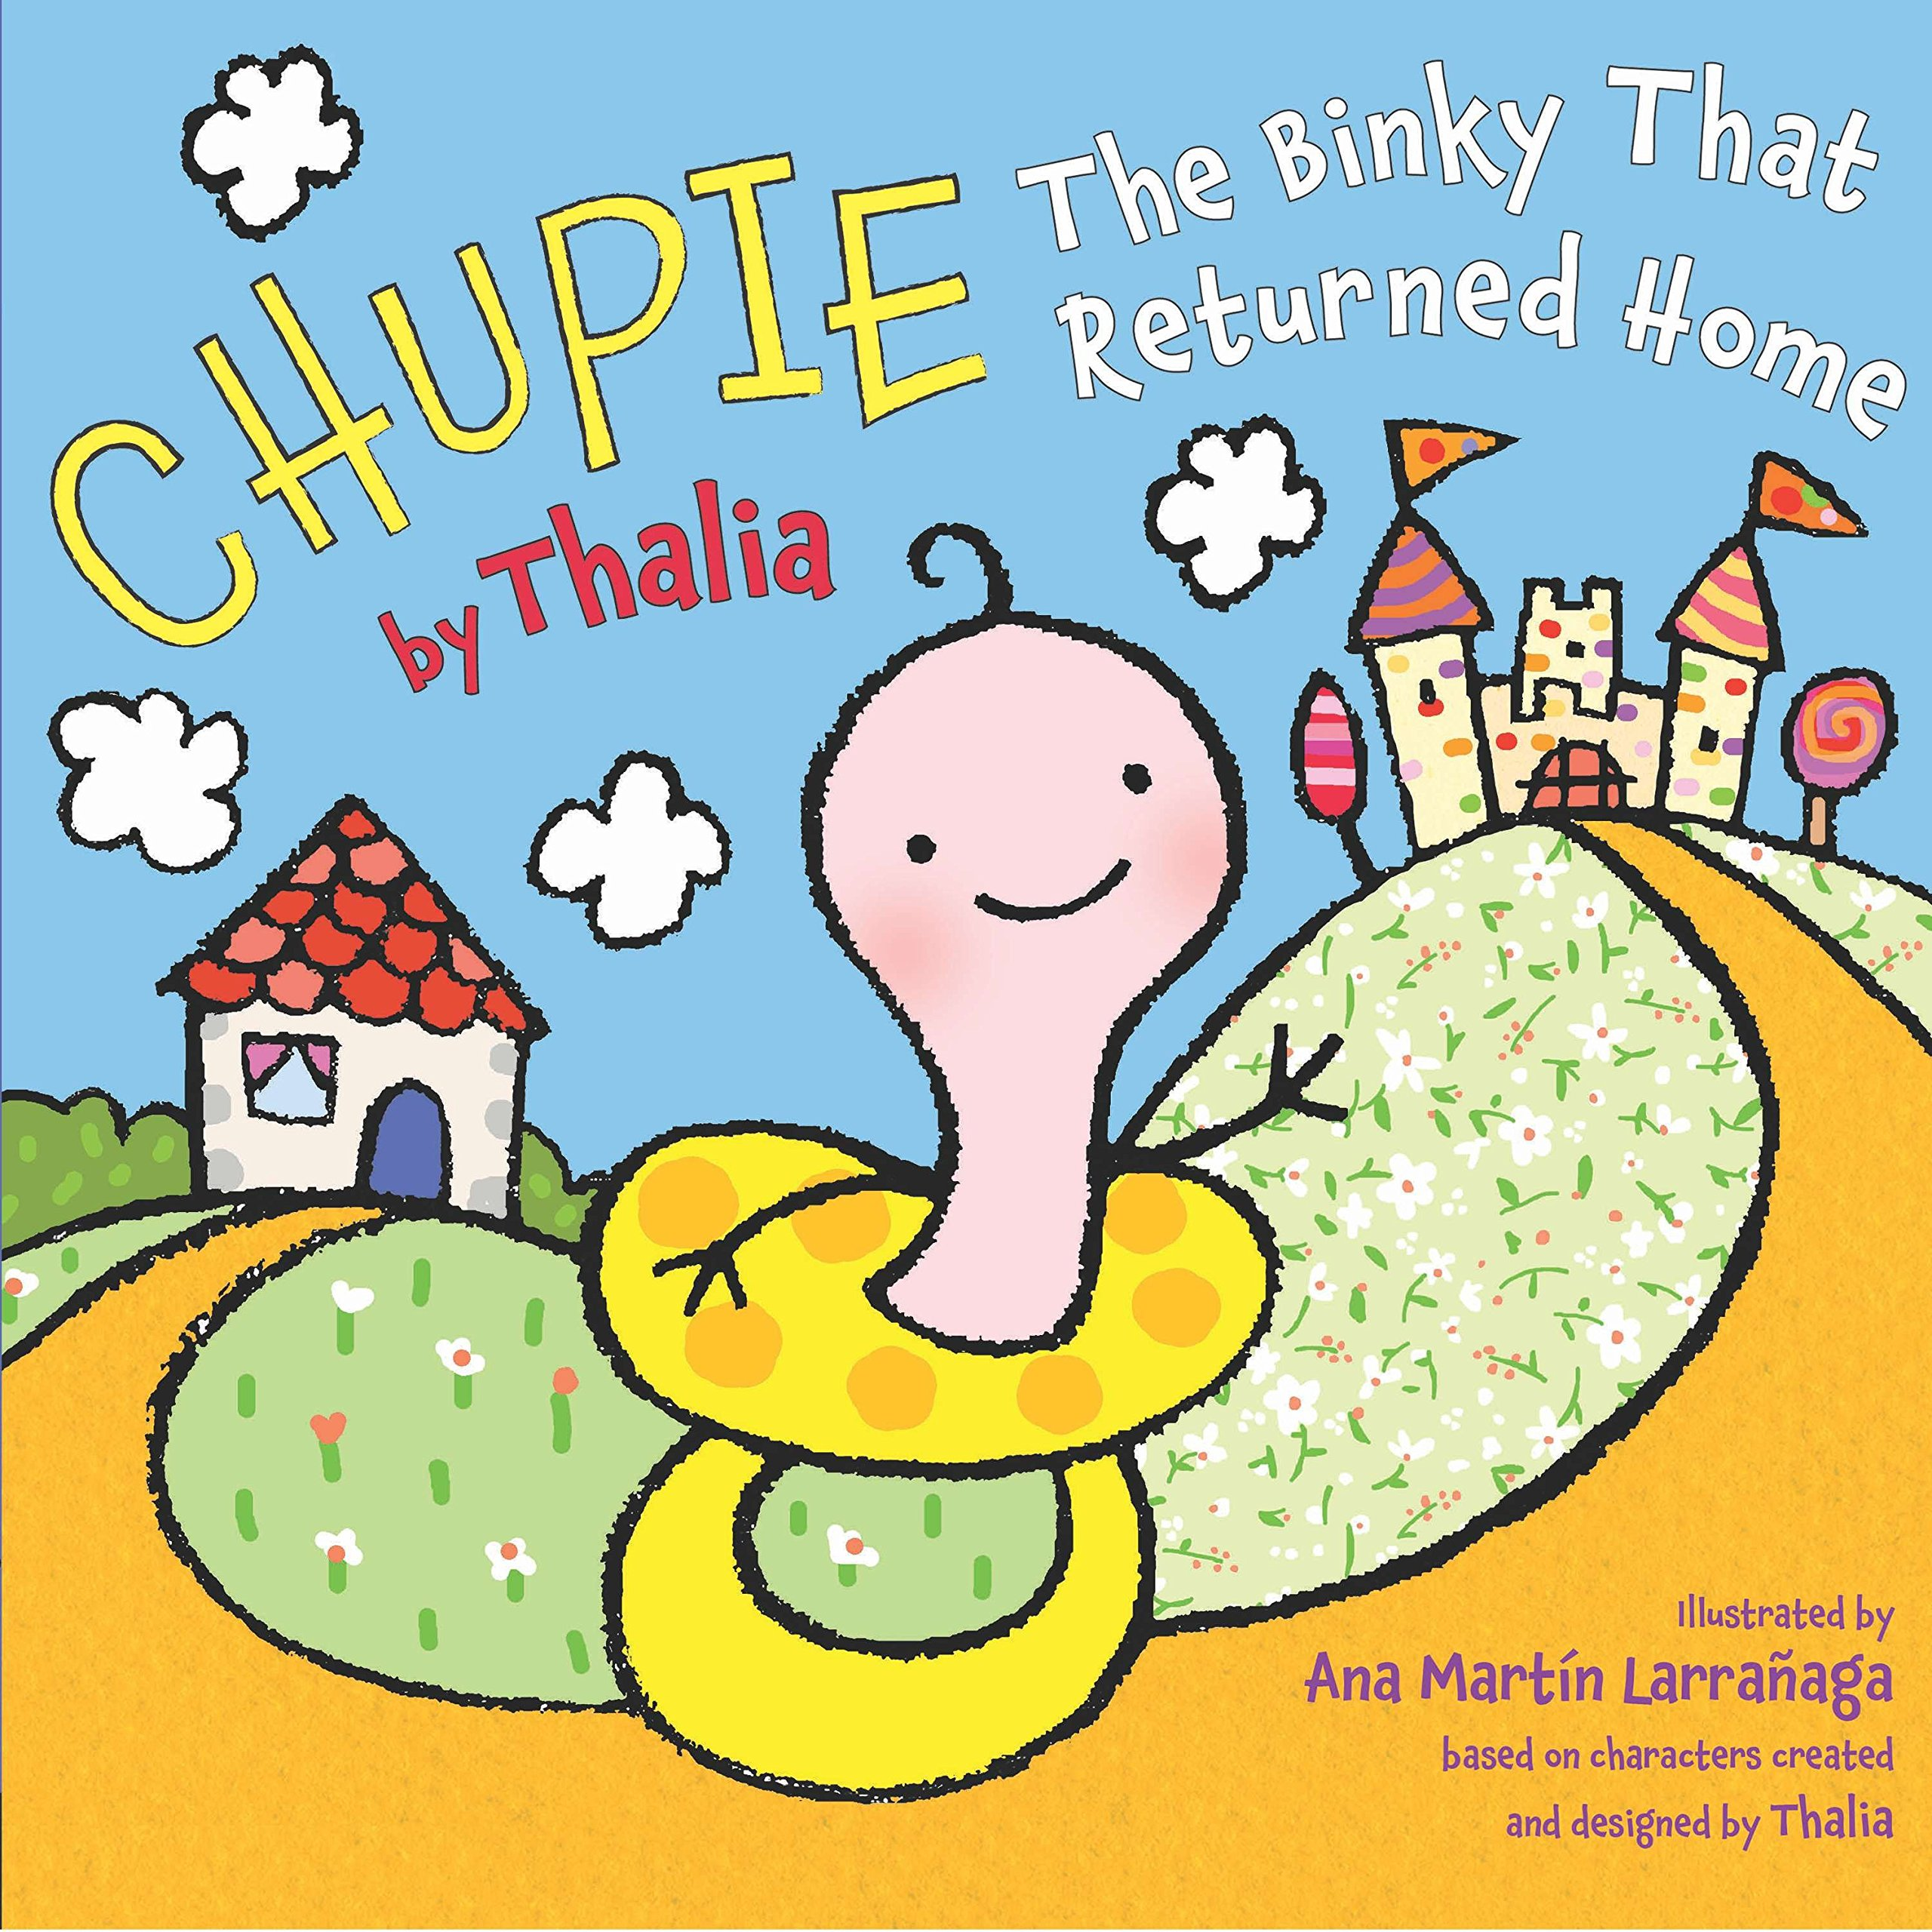 Chupie: The Binky That Returned Home (English edition ...